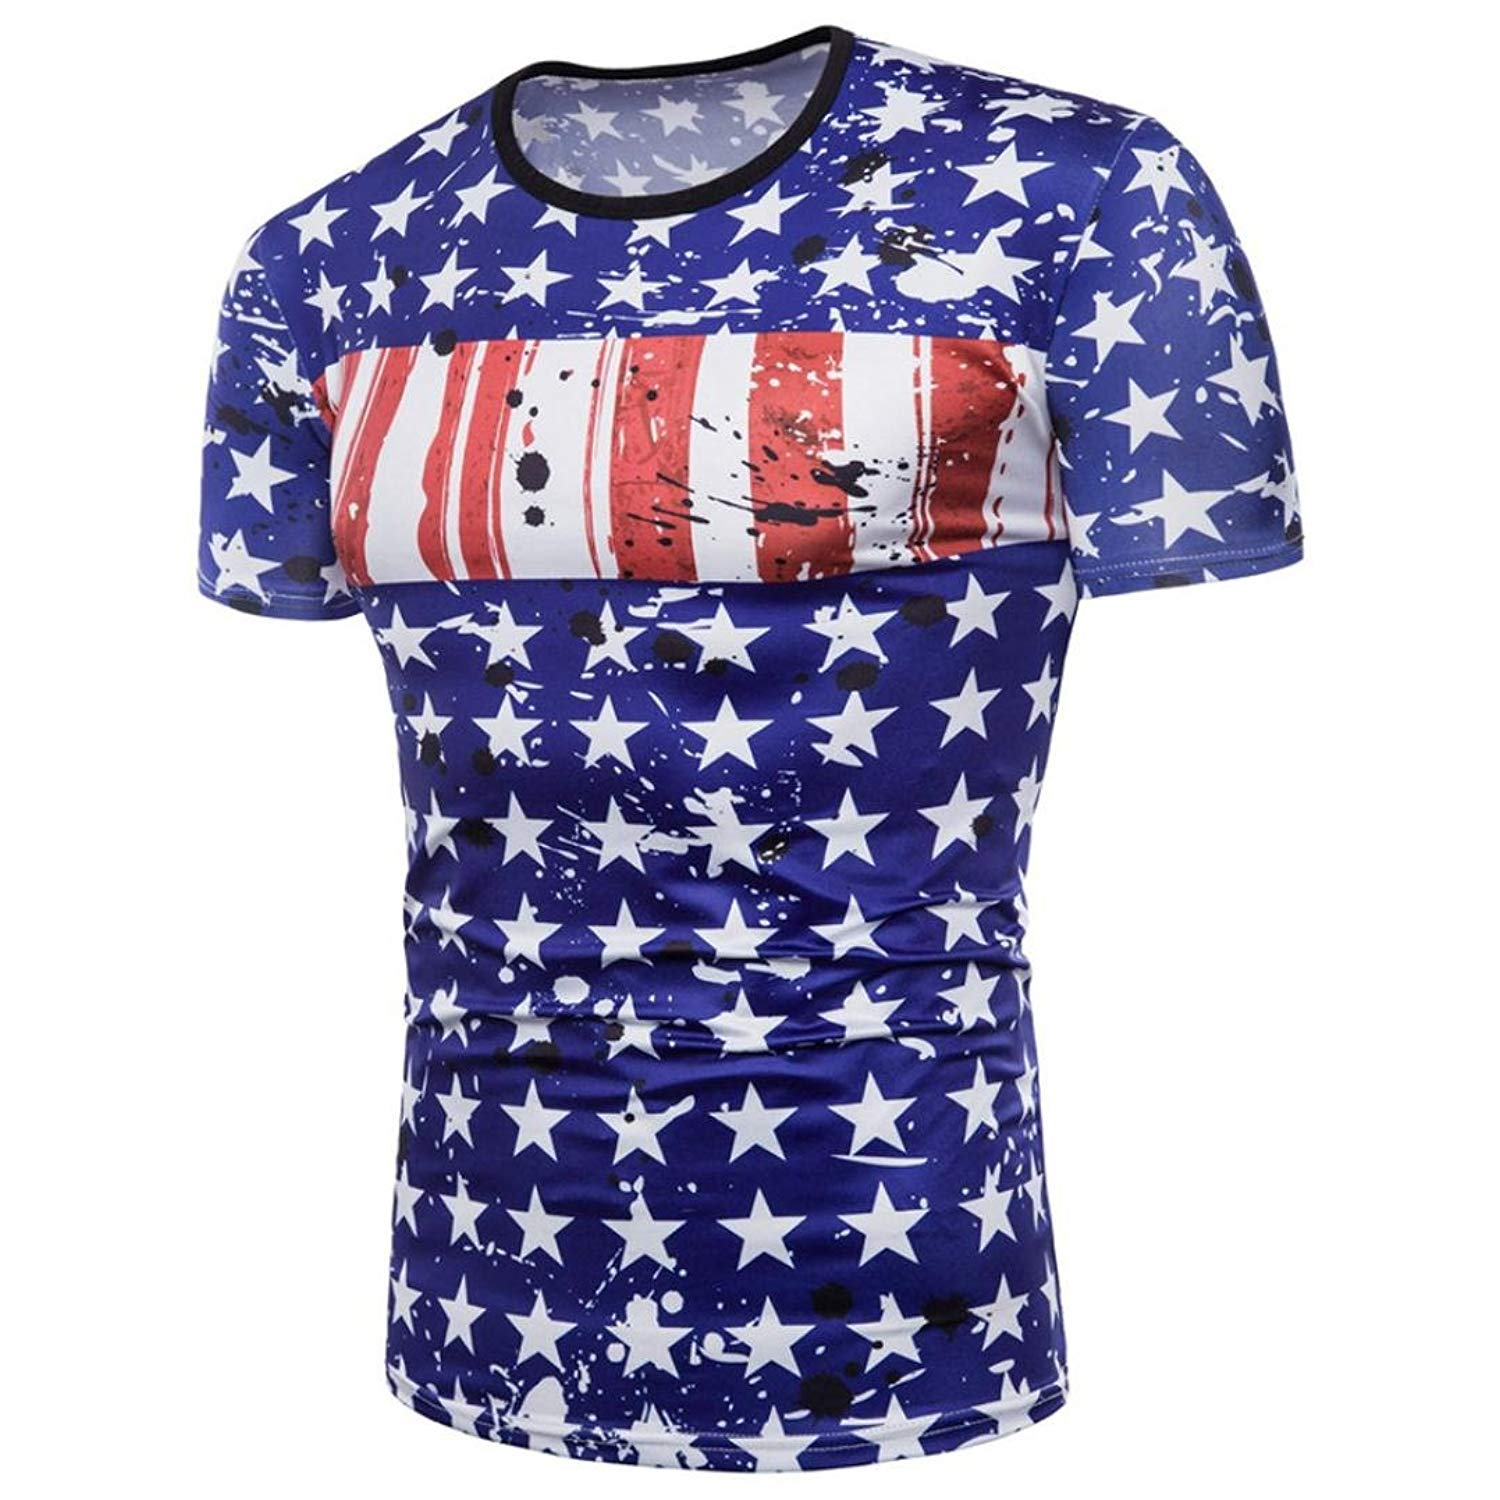 Challyhope Mens Tees, Patriotic Flag 3D Printed Graphic T Shirts Summer Casual Cool Tops Jersey